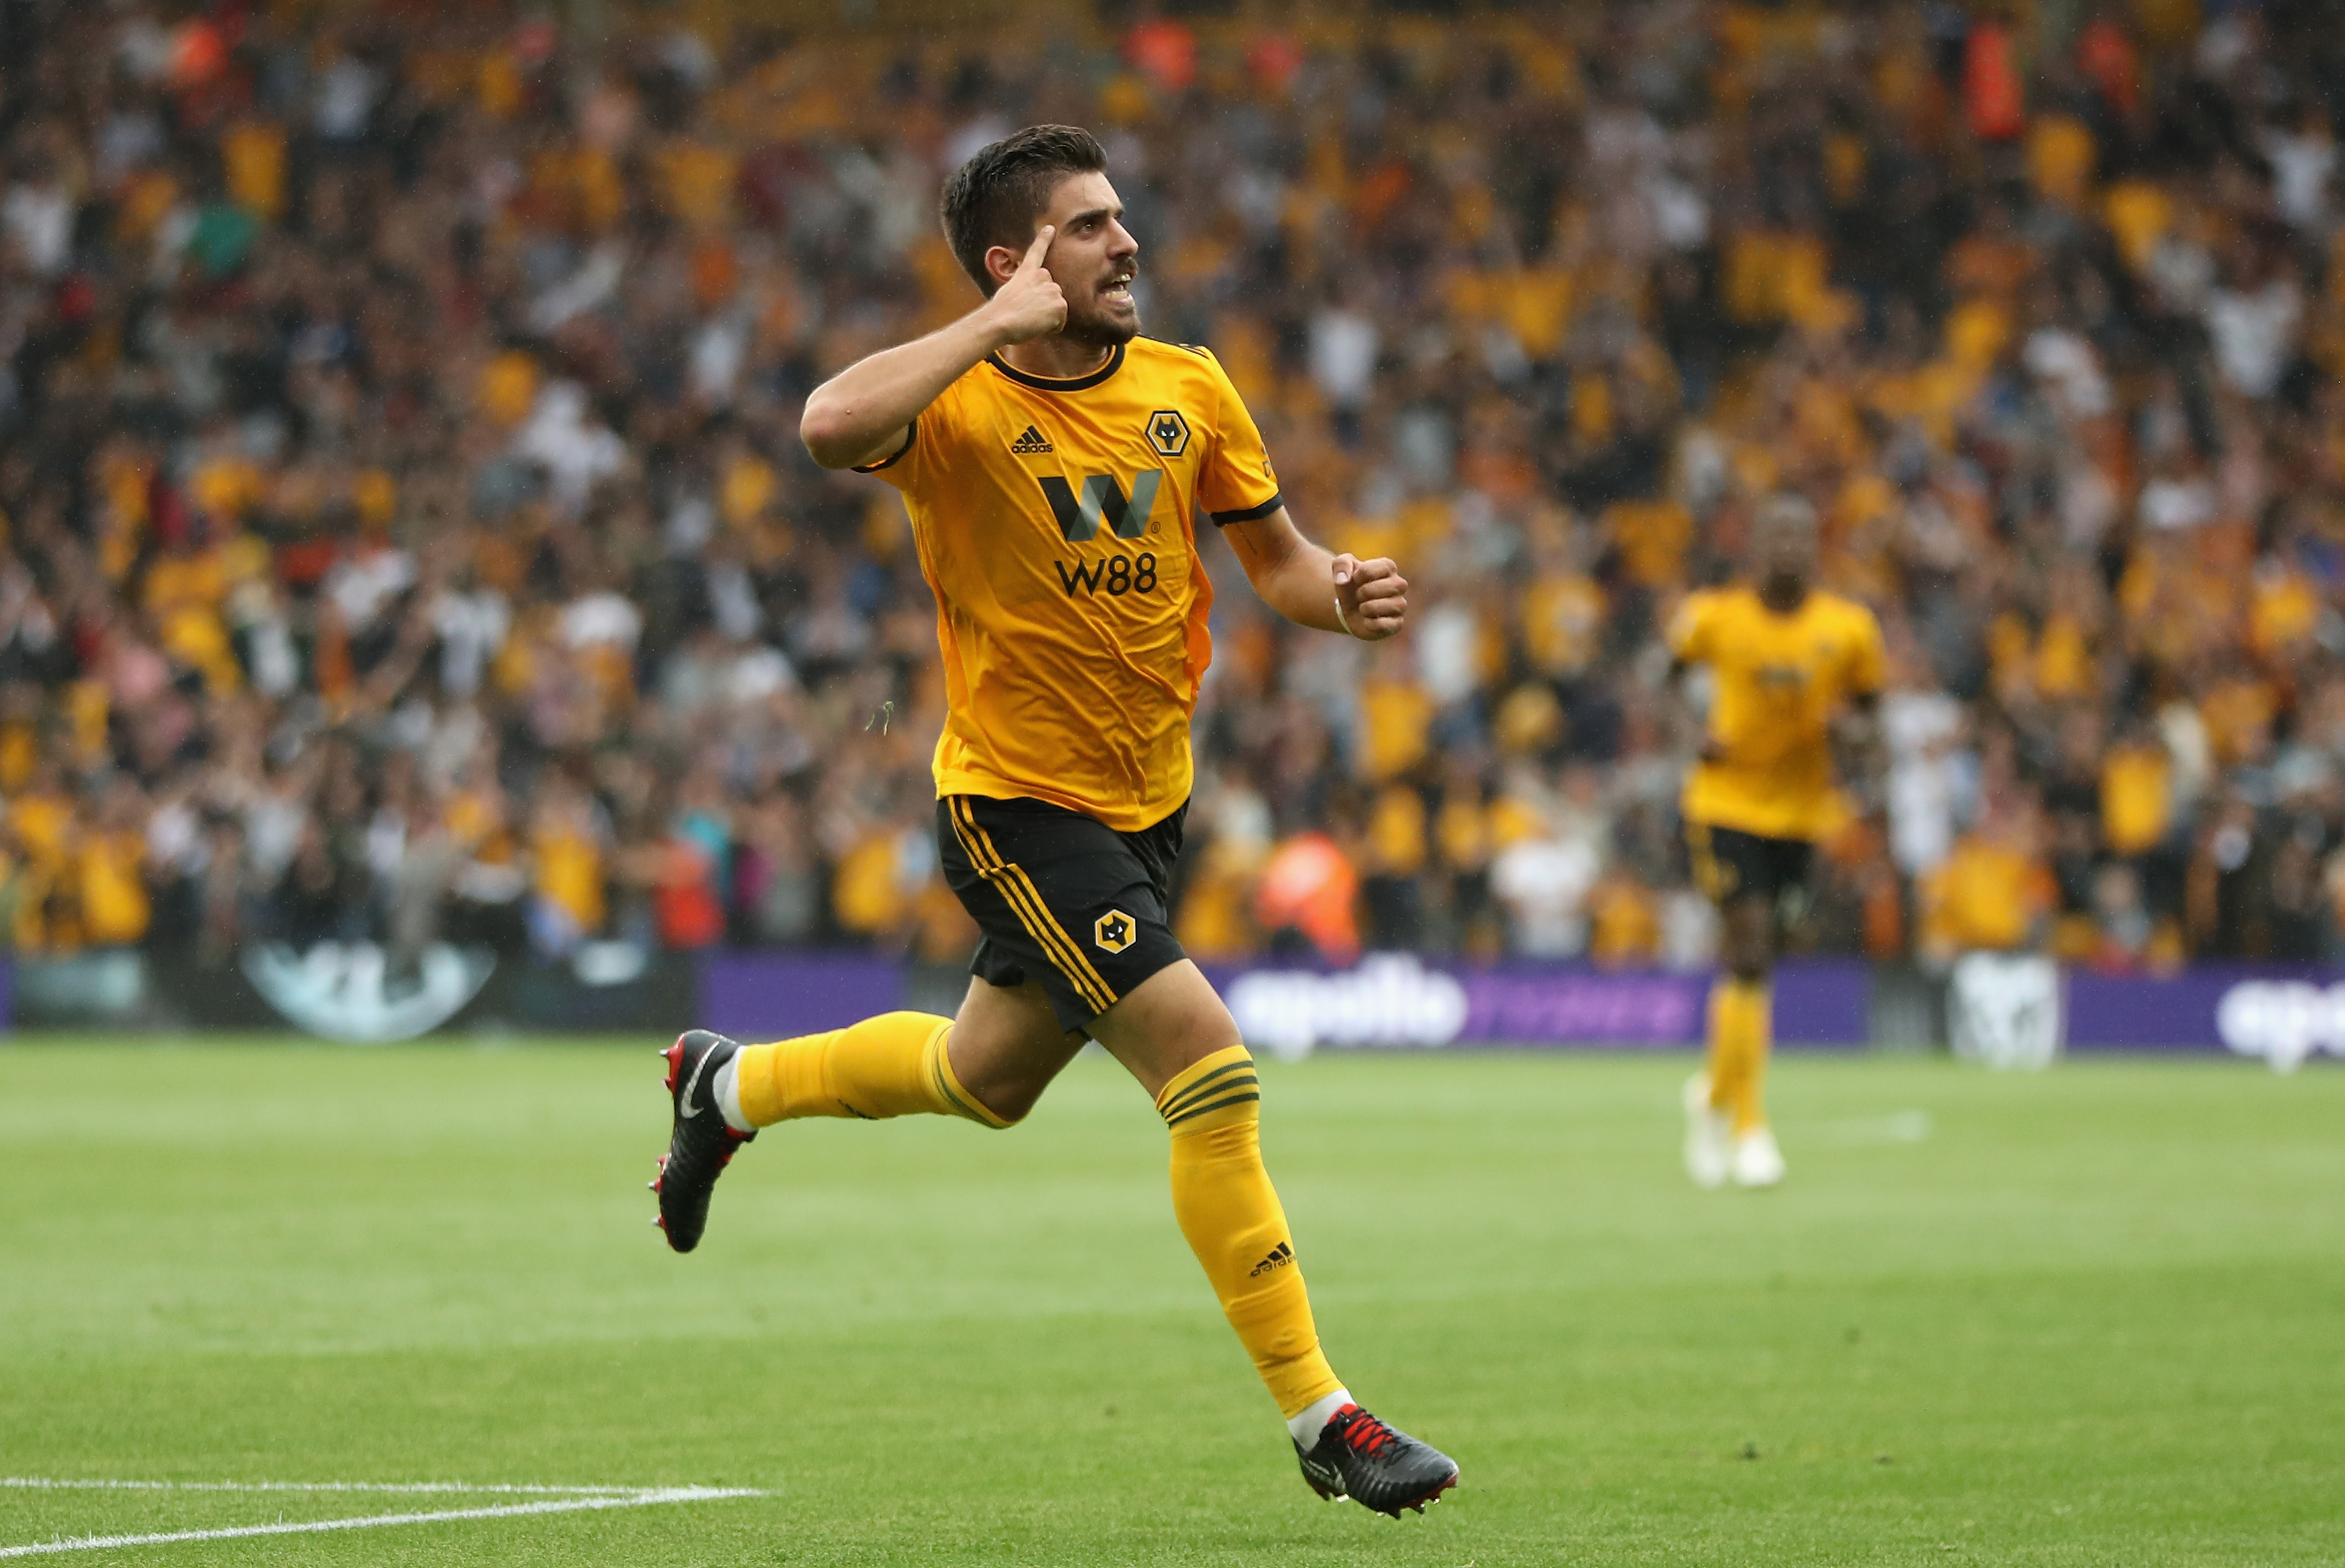 Will Manchester United pay up for Neves? (Photo courtesy - David Rogers/Getty Images)